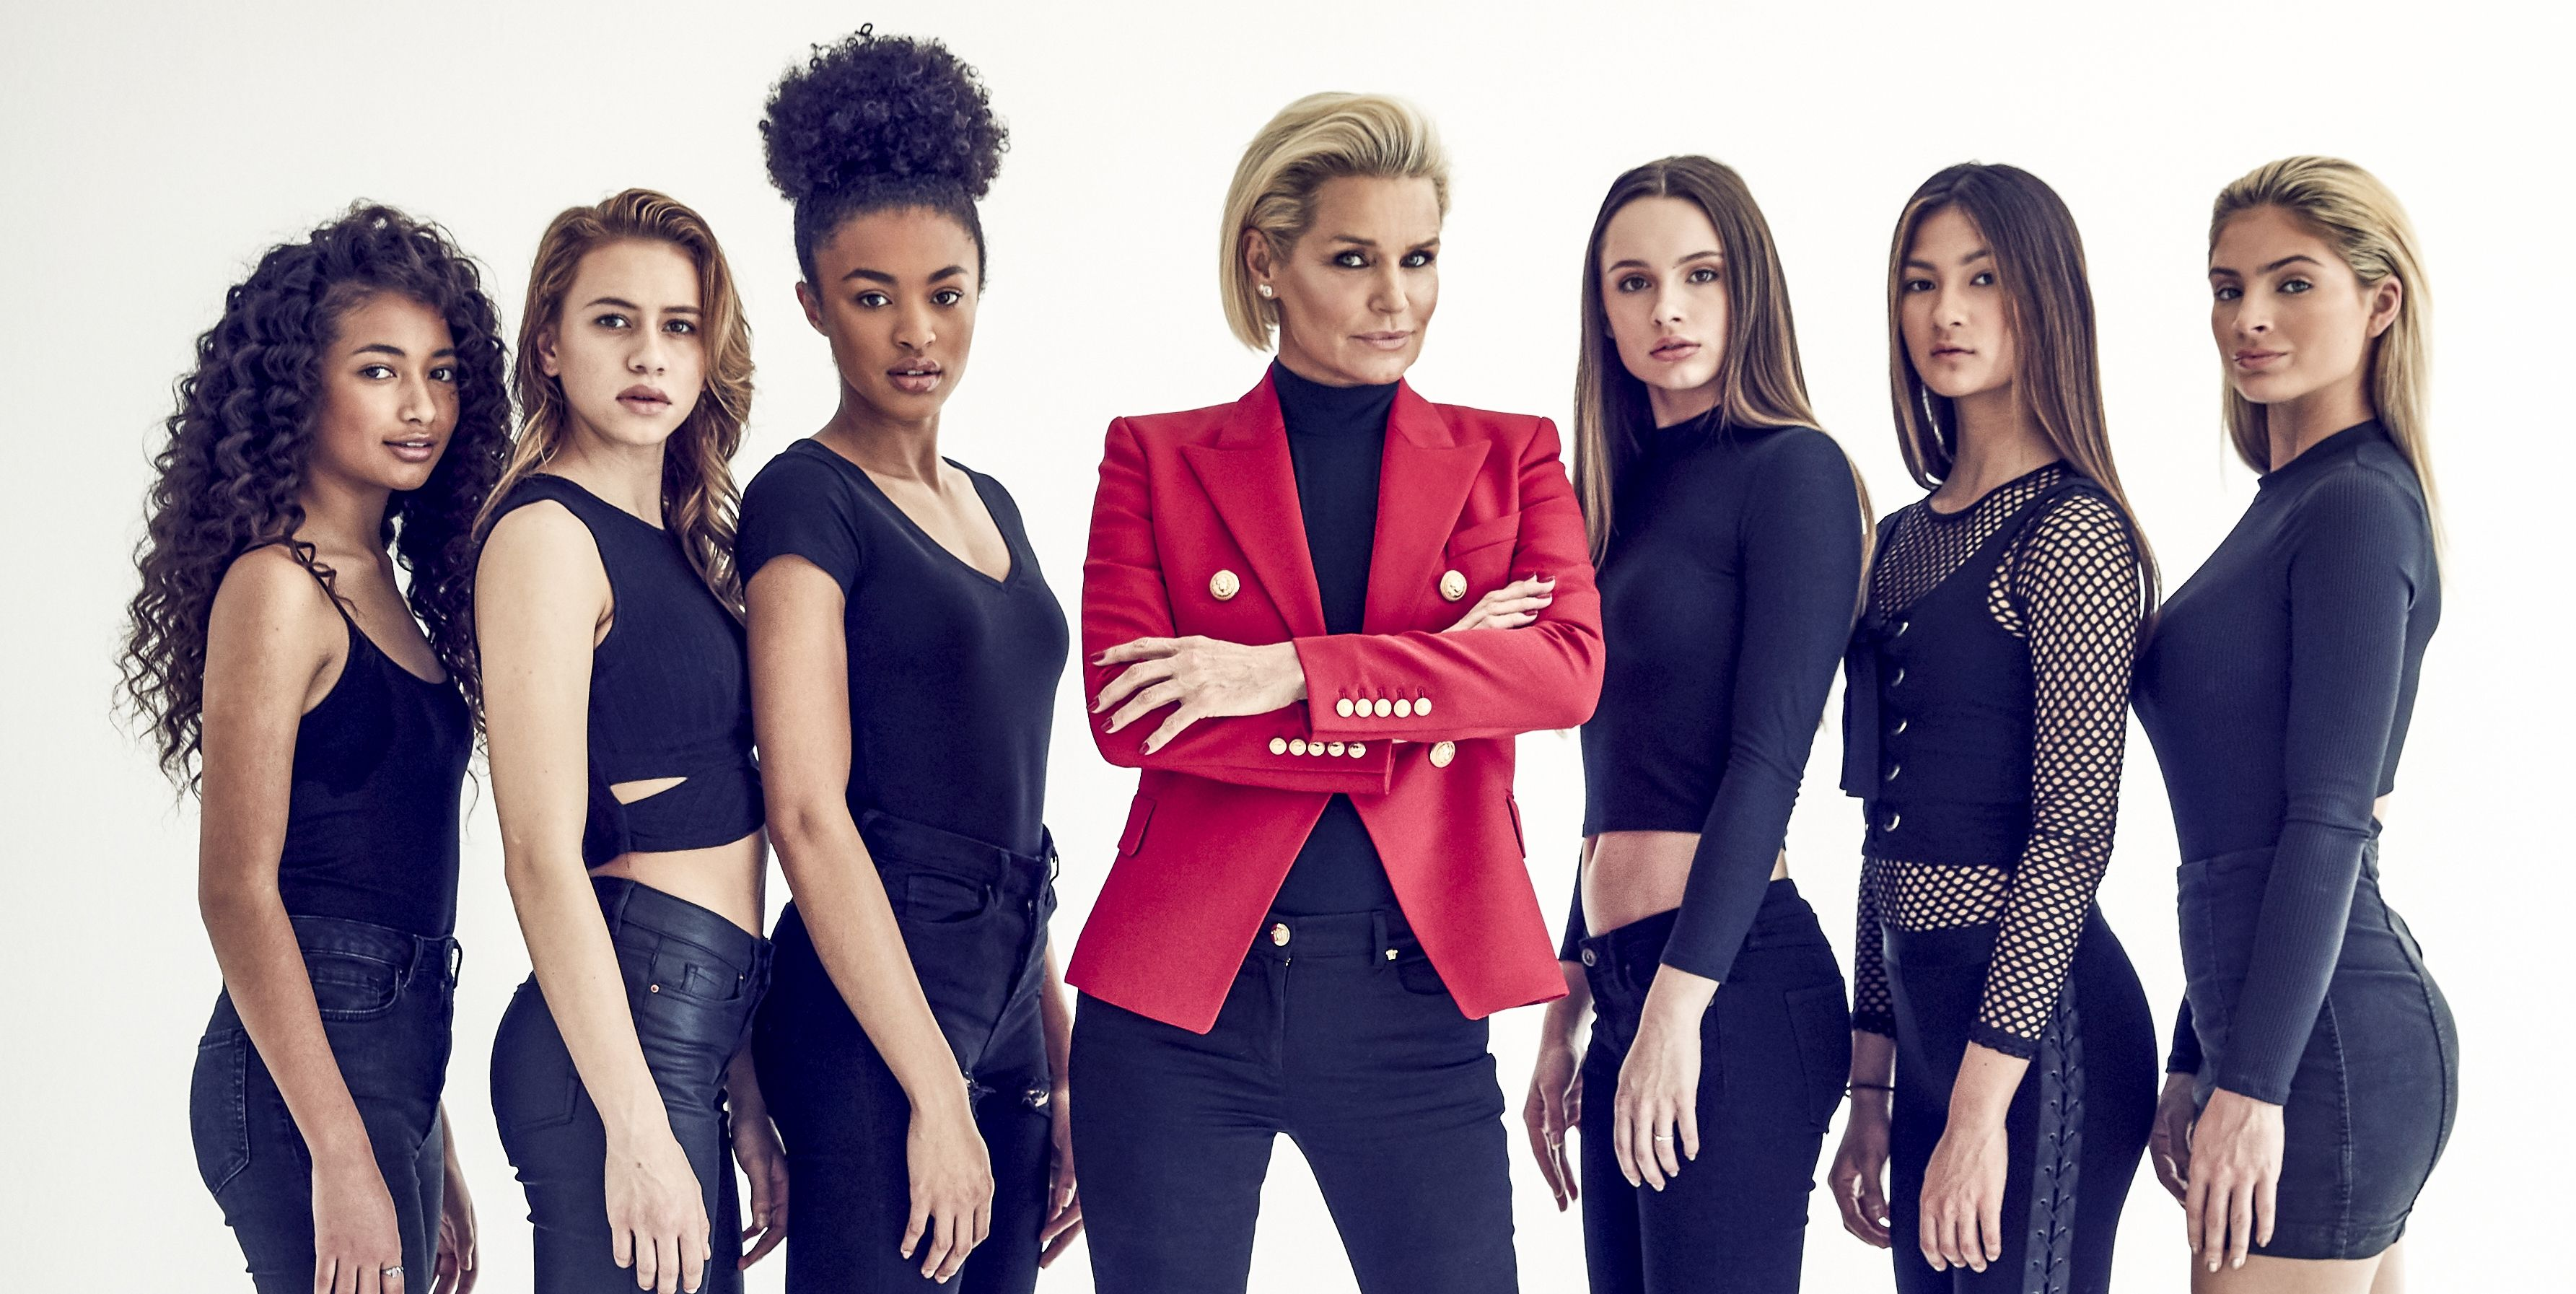 The Hadids New Modelling Competition Show Looks Like Your Next Reality Tv Addiction